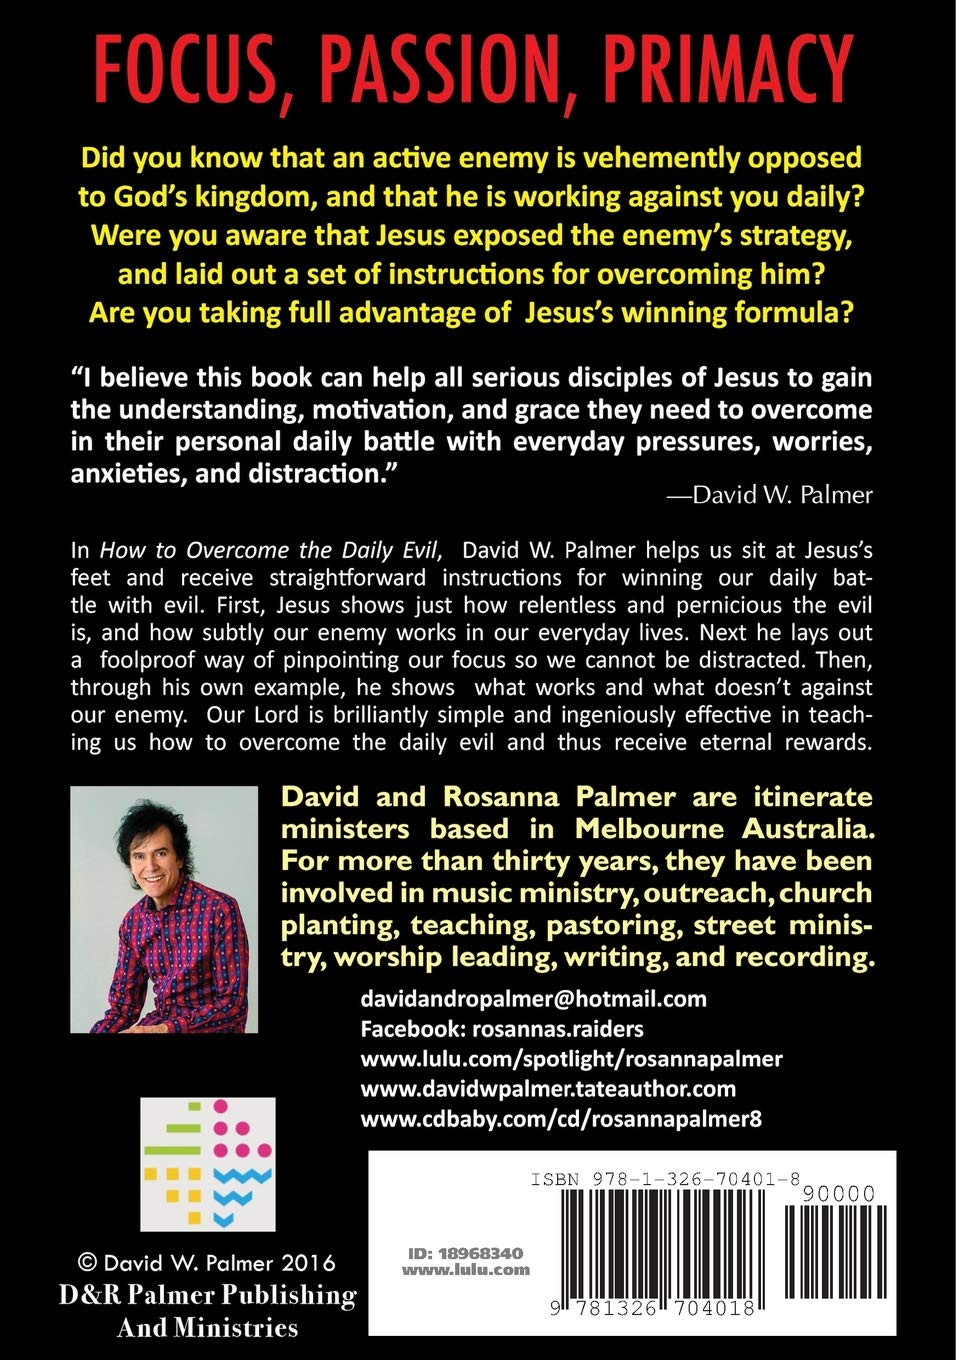 How to Overcome the Daily Evil: David W Palmer: 9781326704018